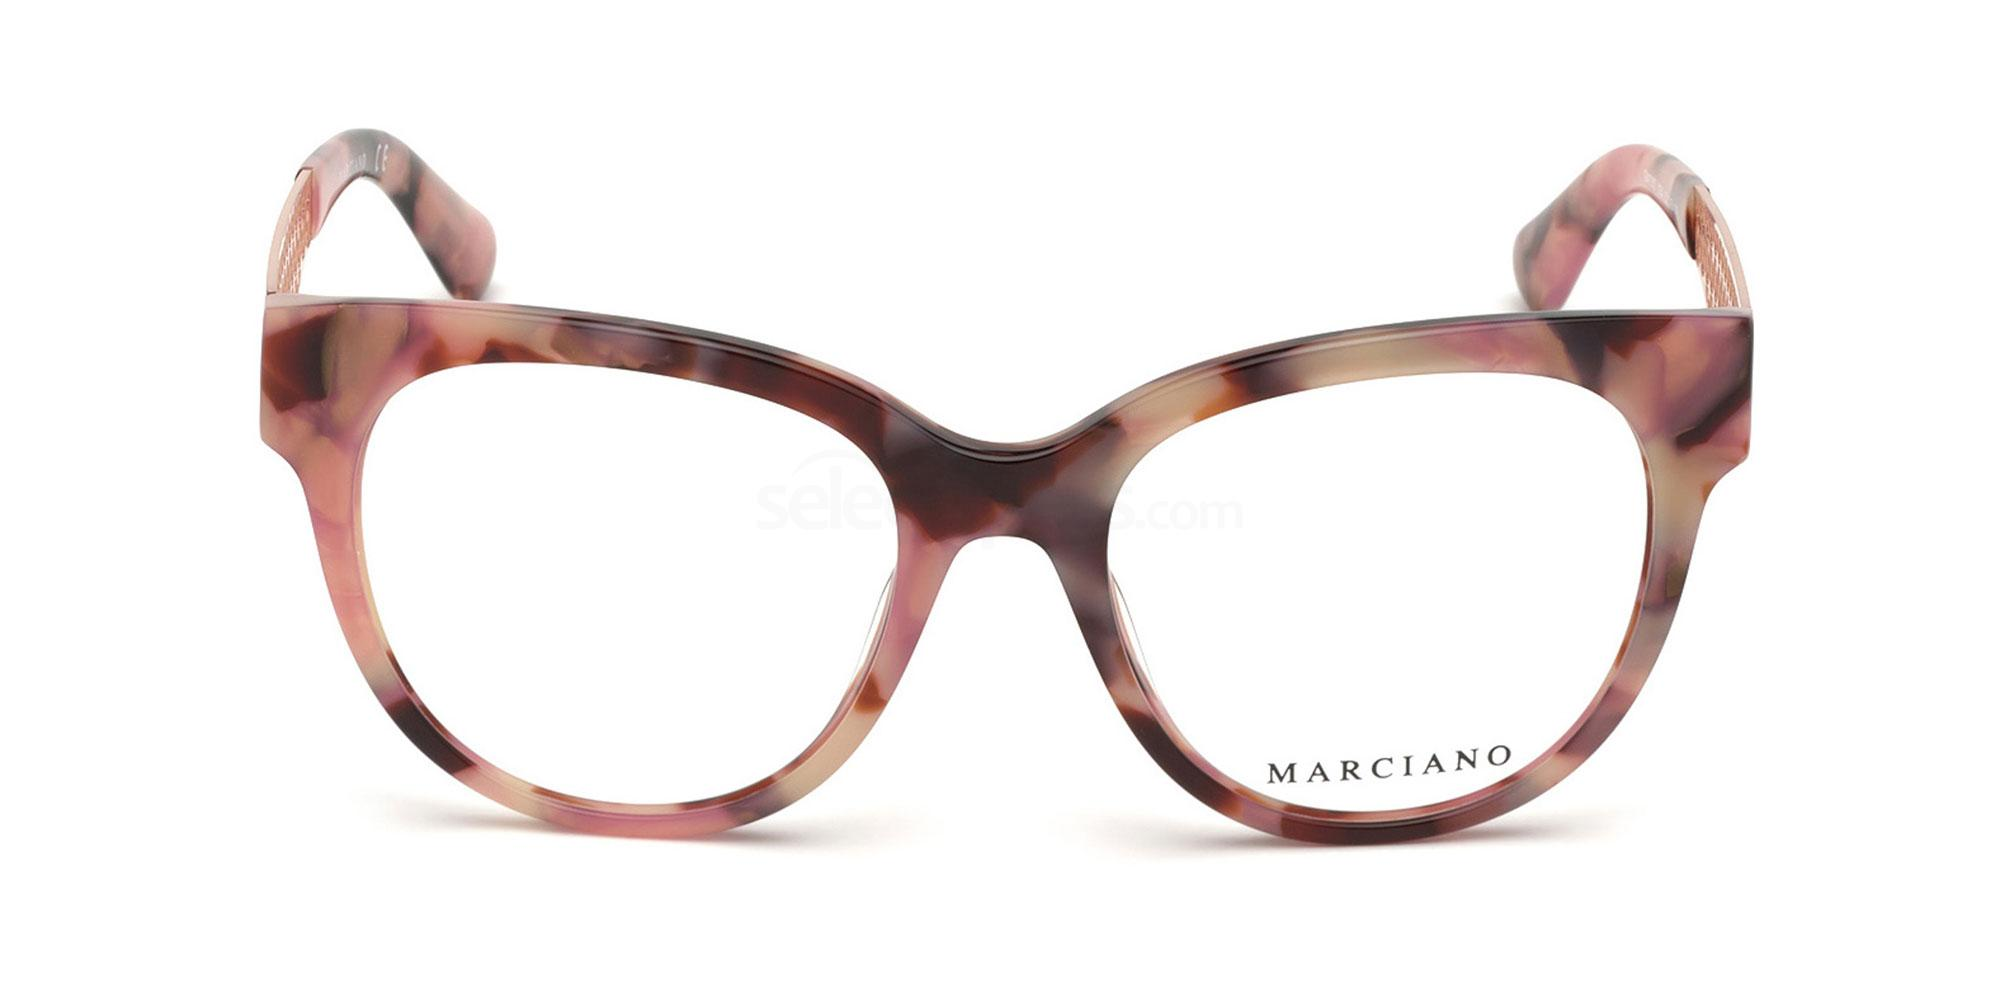 074 GM0357 Glasses, Guess by Marciano